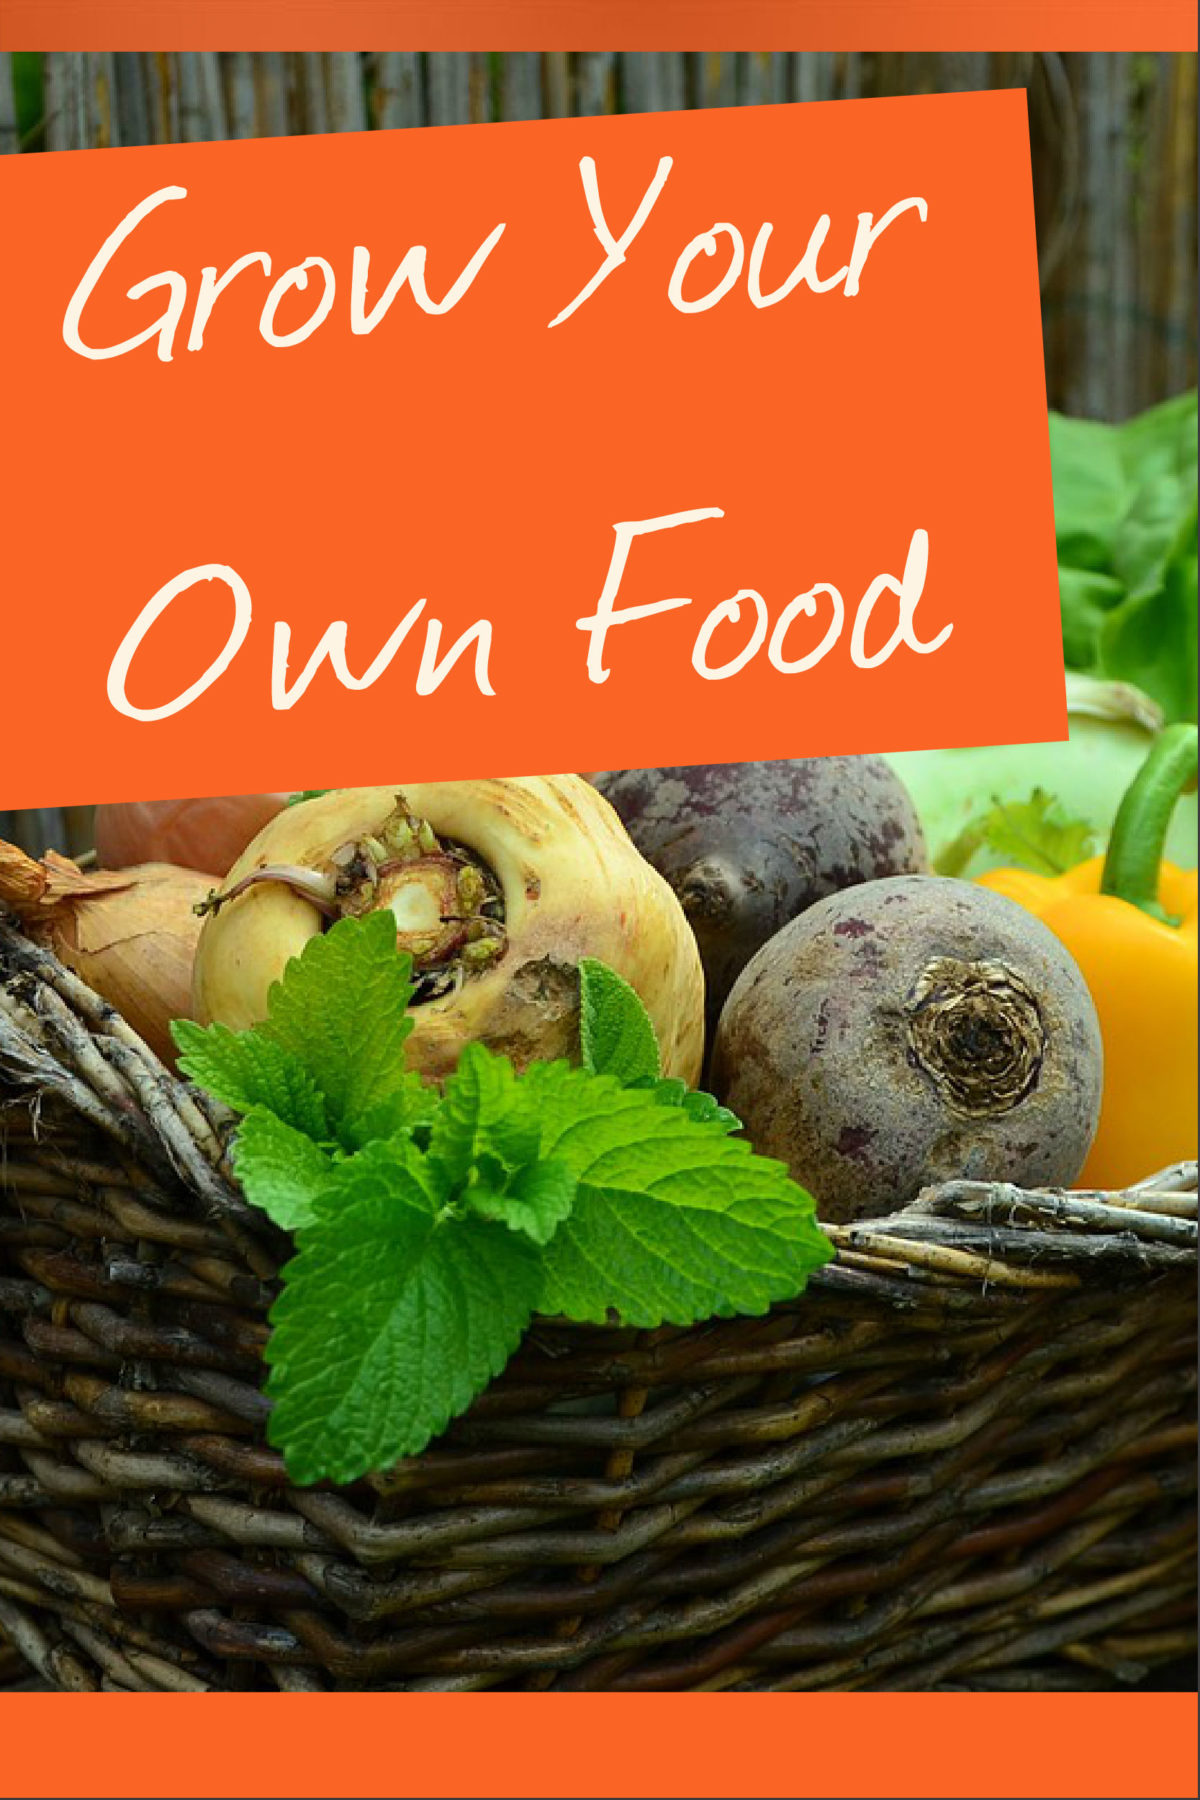 Grow Your Own Food – Gardening PLR Content